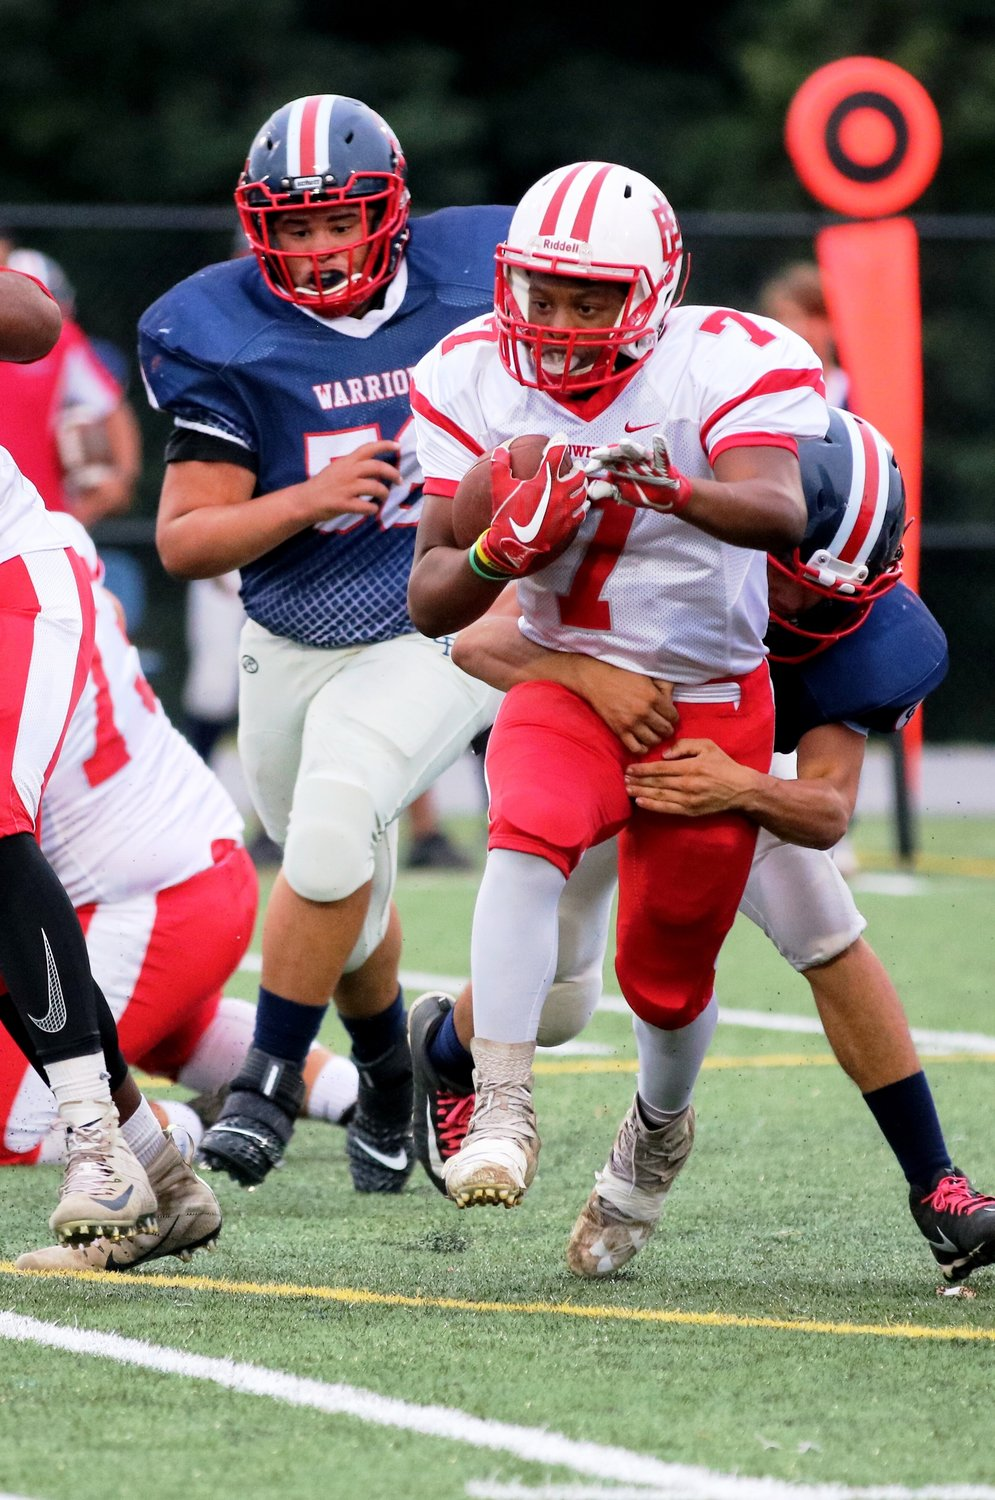 Townies Elijiah Owens moving the ball for a big gain